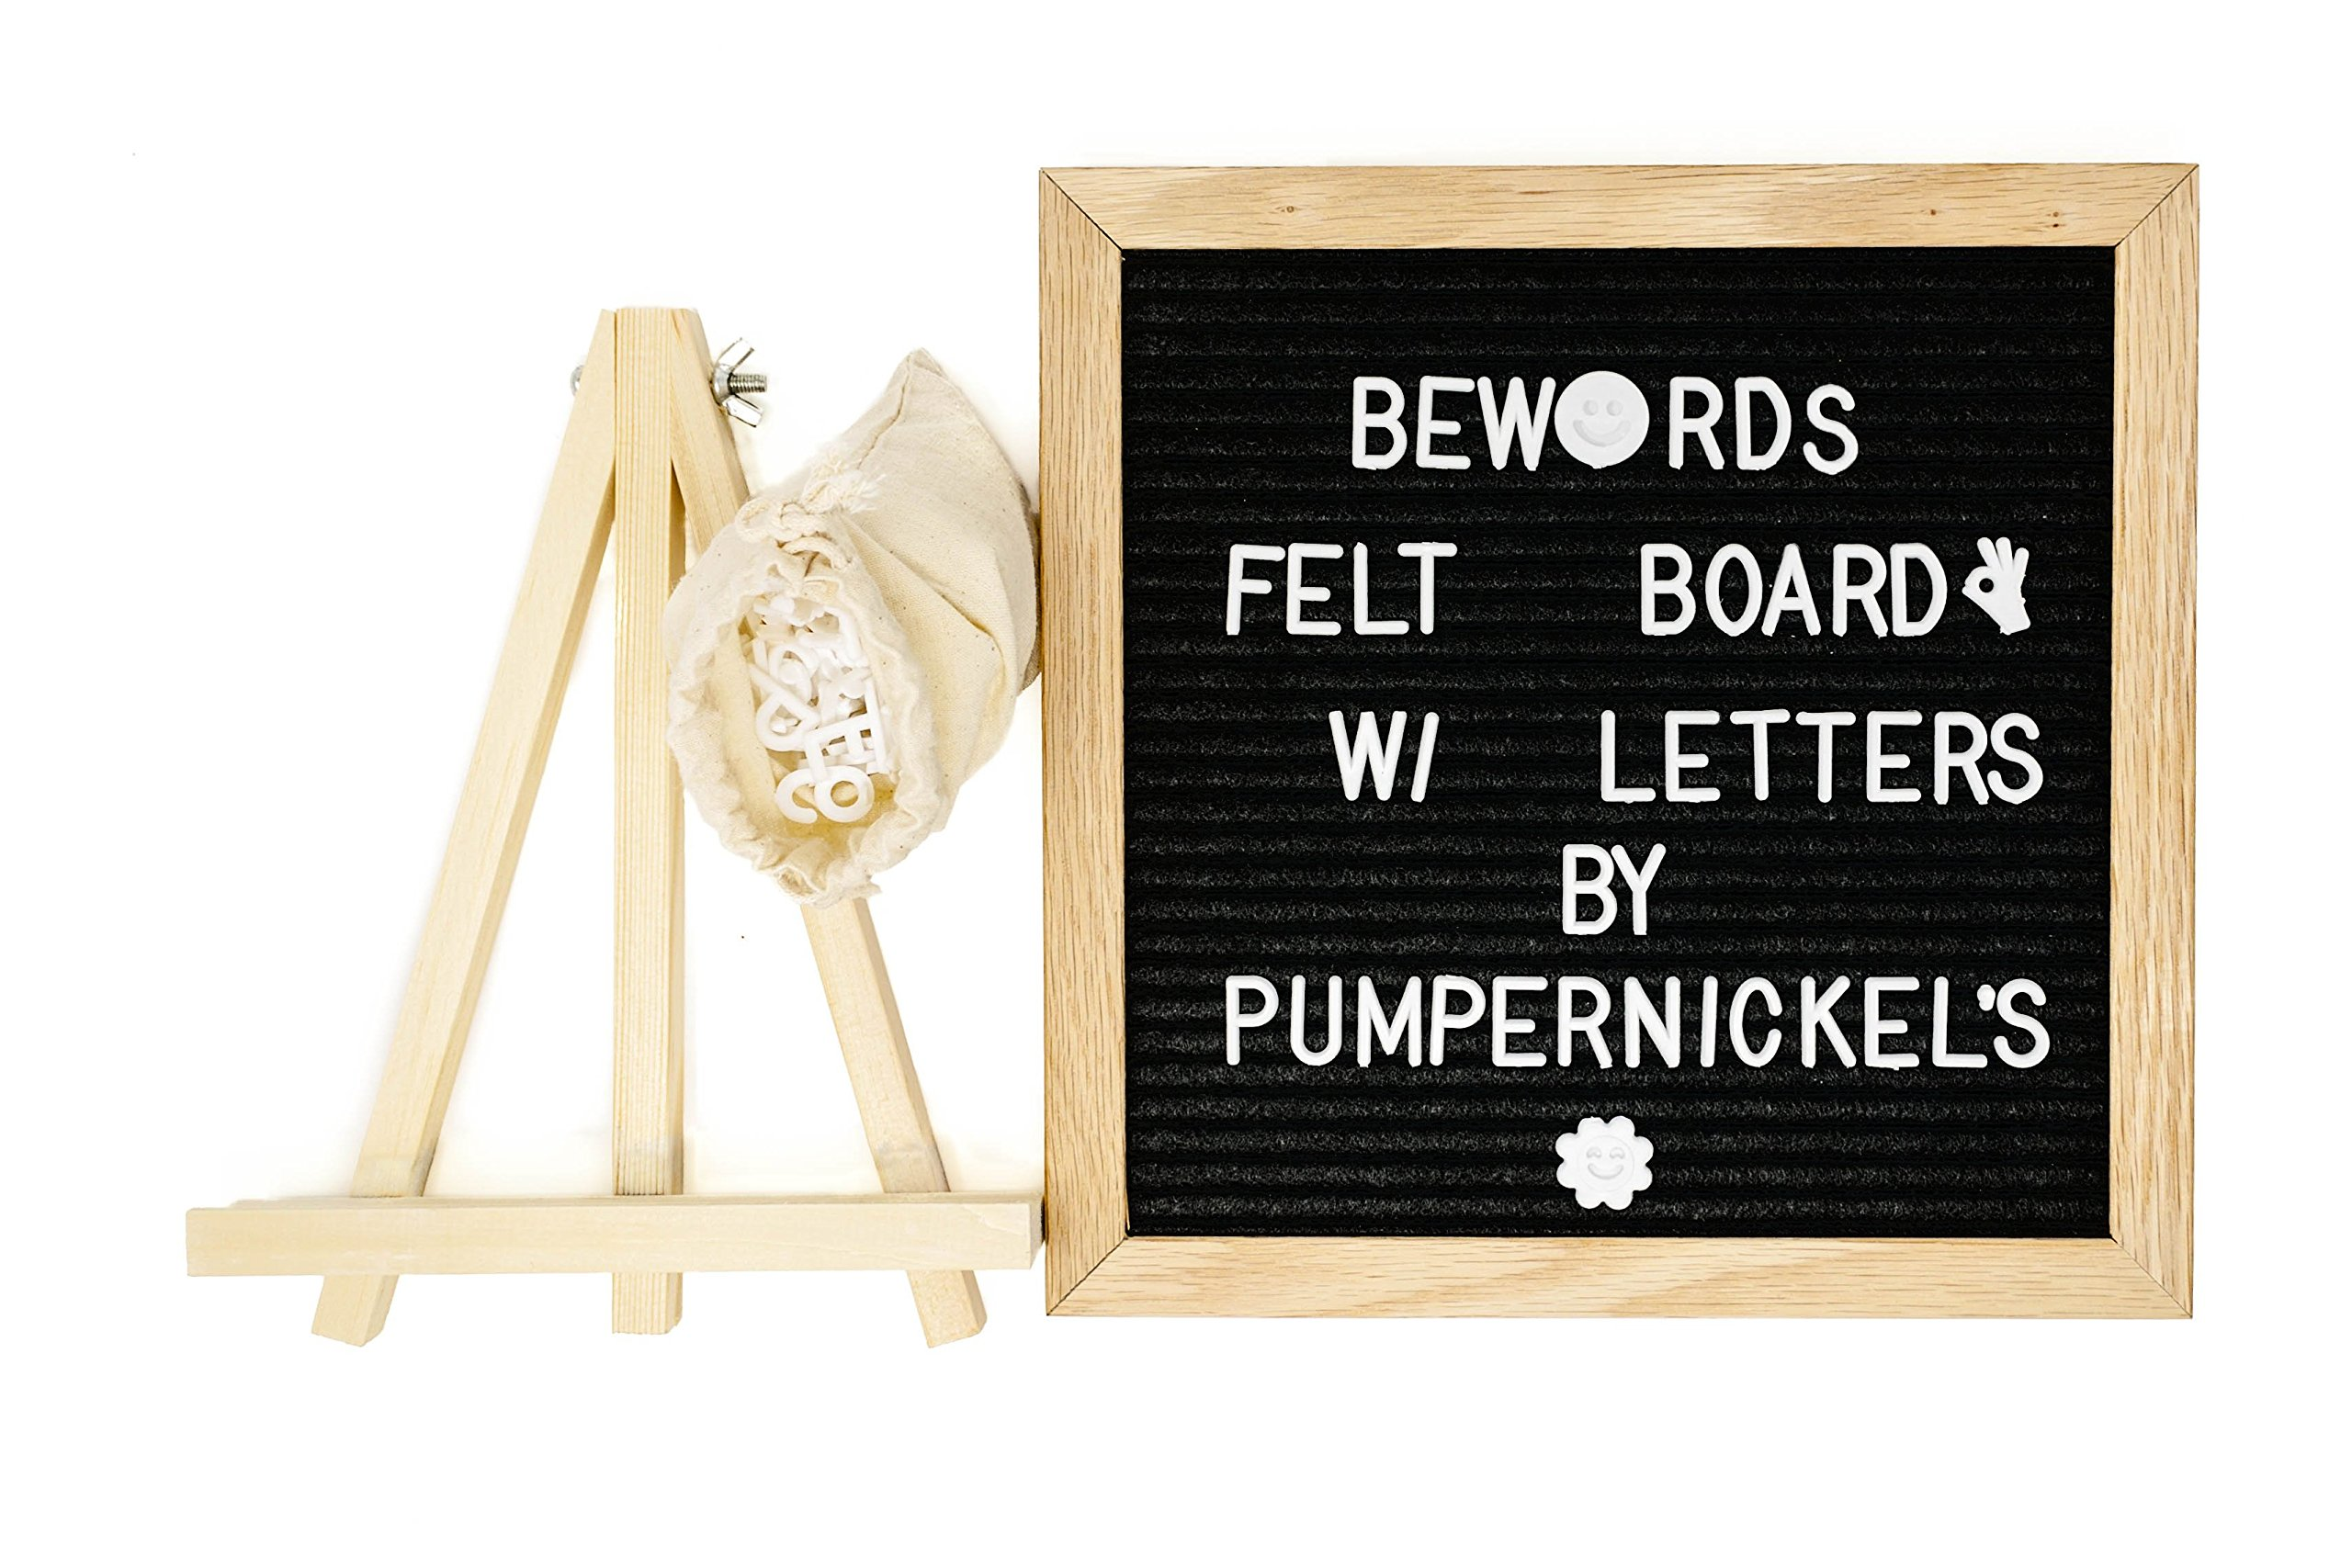 Bewords Changeable Letter Board 10 x 10 with Felt Board Letters, Mounting Hook, Easel Stand - Letter Board Sign in Black - Felt Letter Board Set for Home Business Marketing